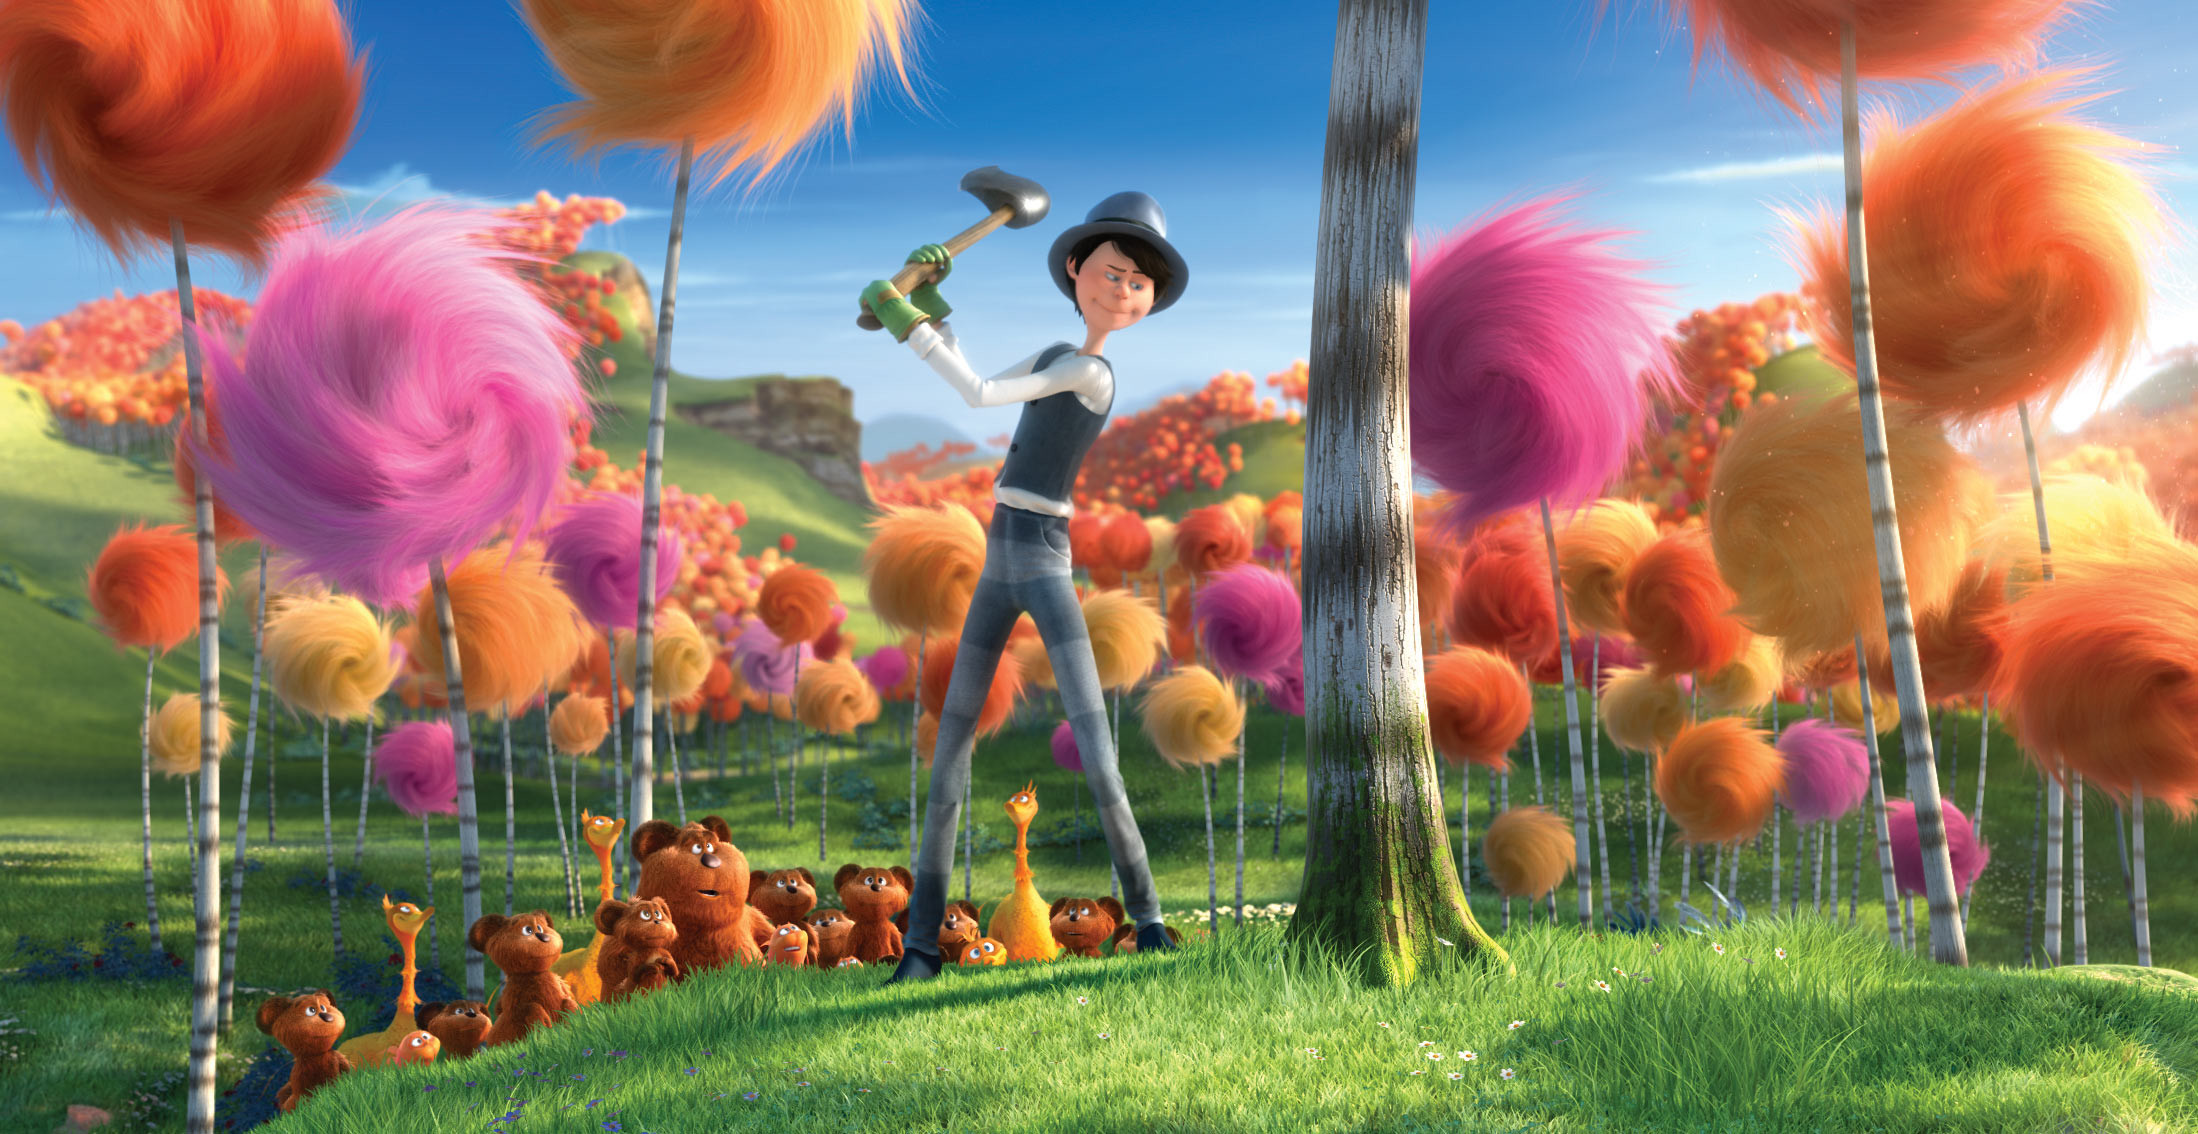 Download dr seuss the lorax full movie